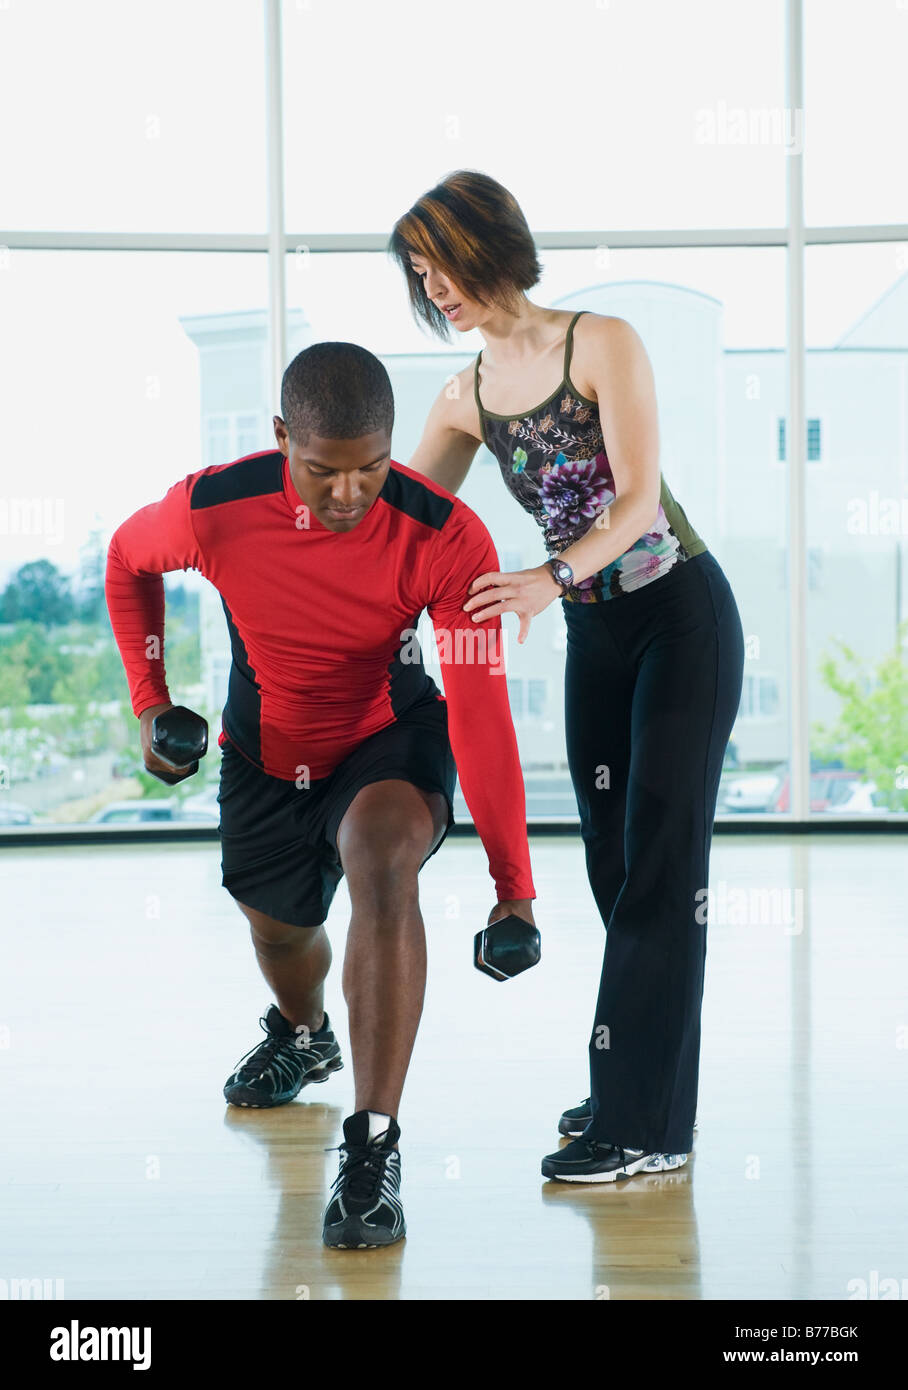 Lunge Dumbbells Stock Photos & Lunge Dumbbells Stock Images